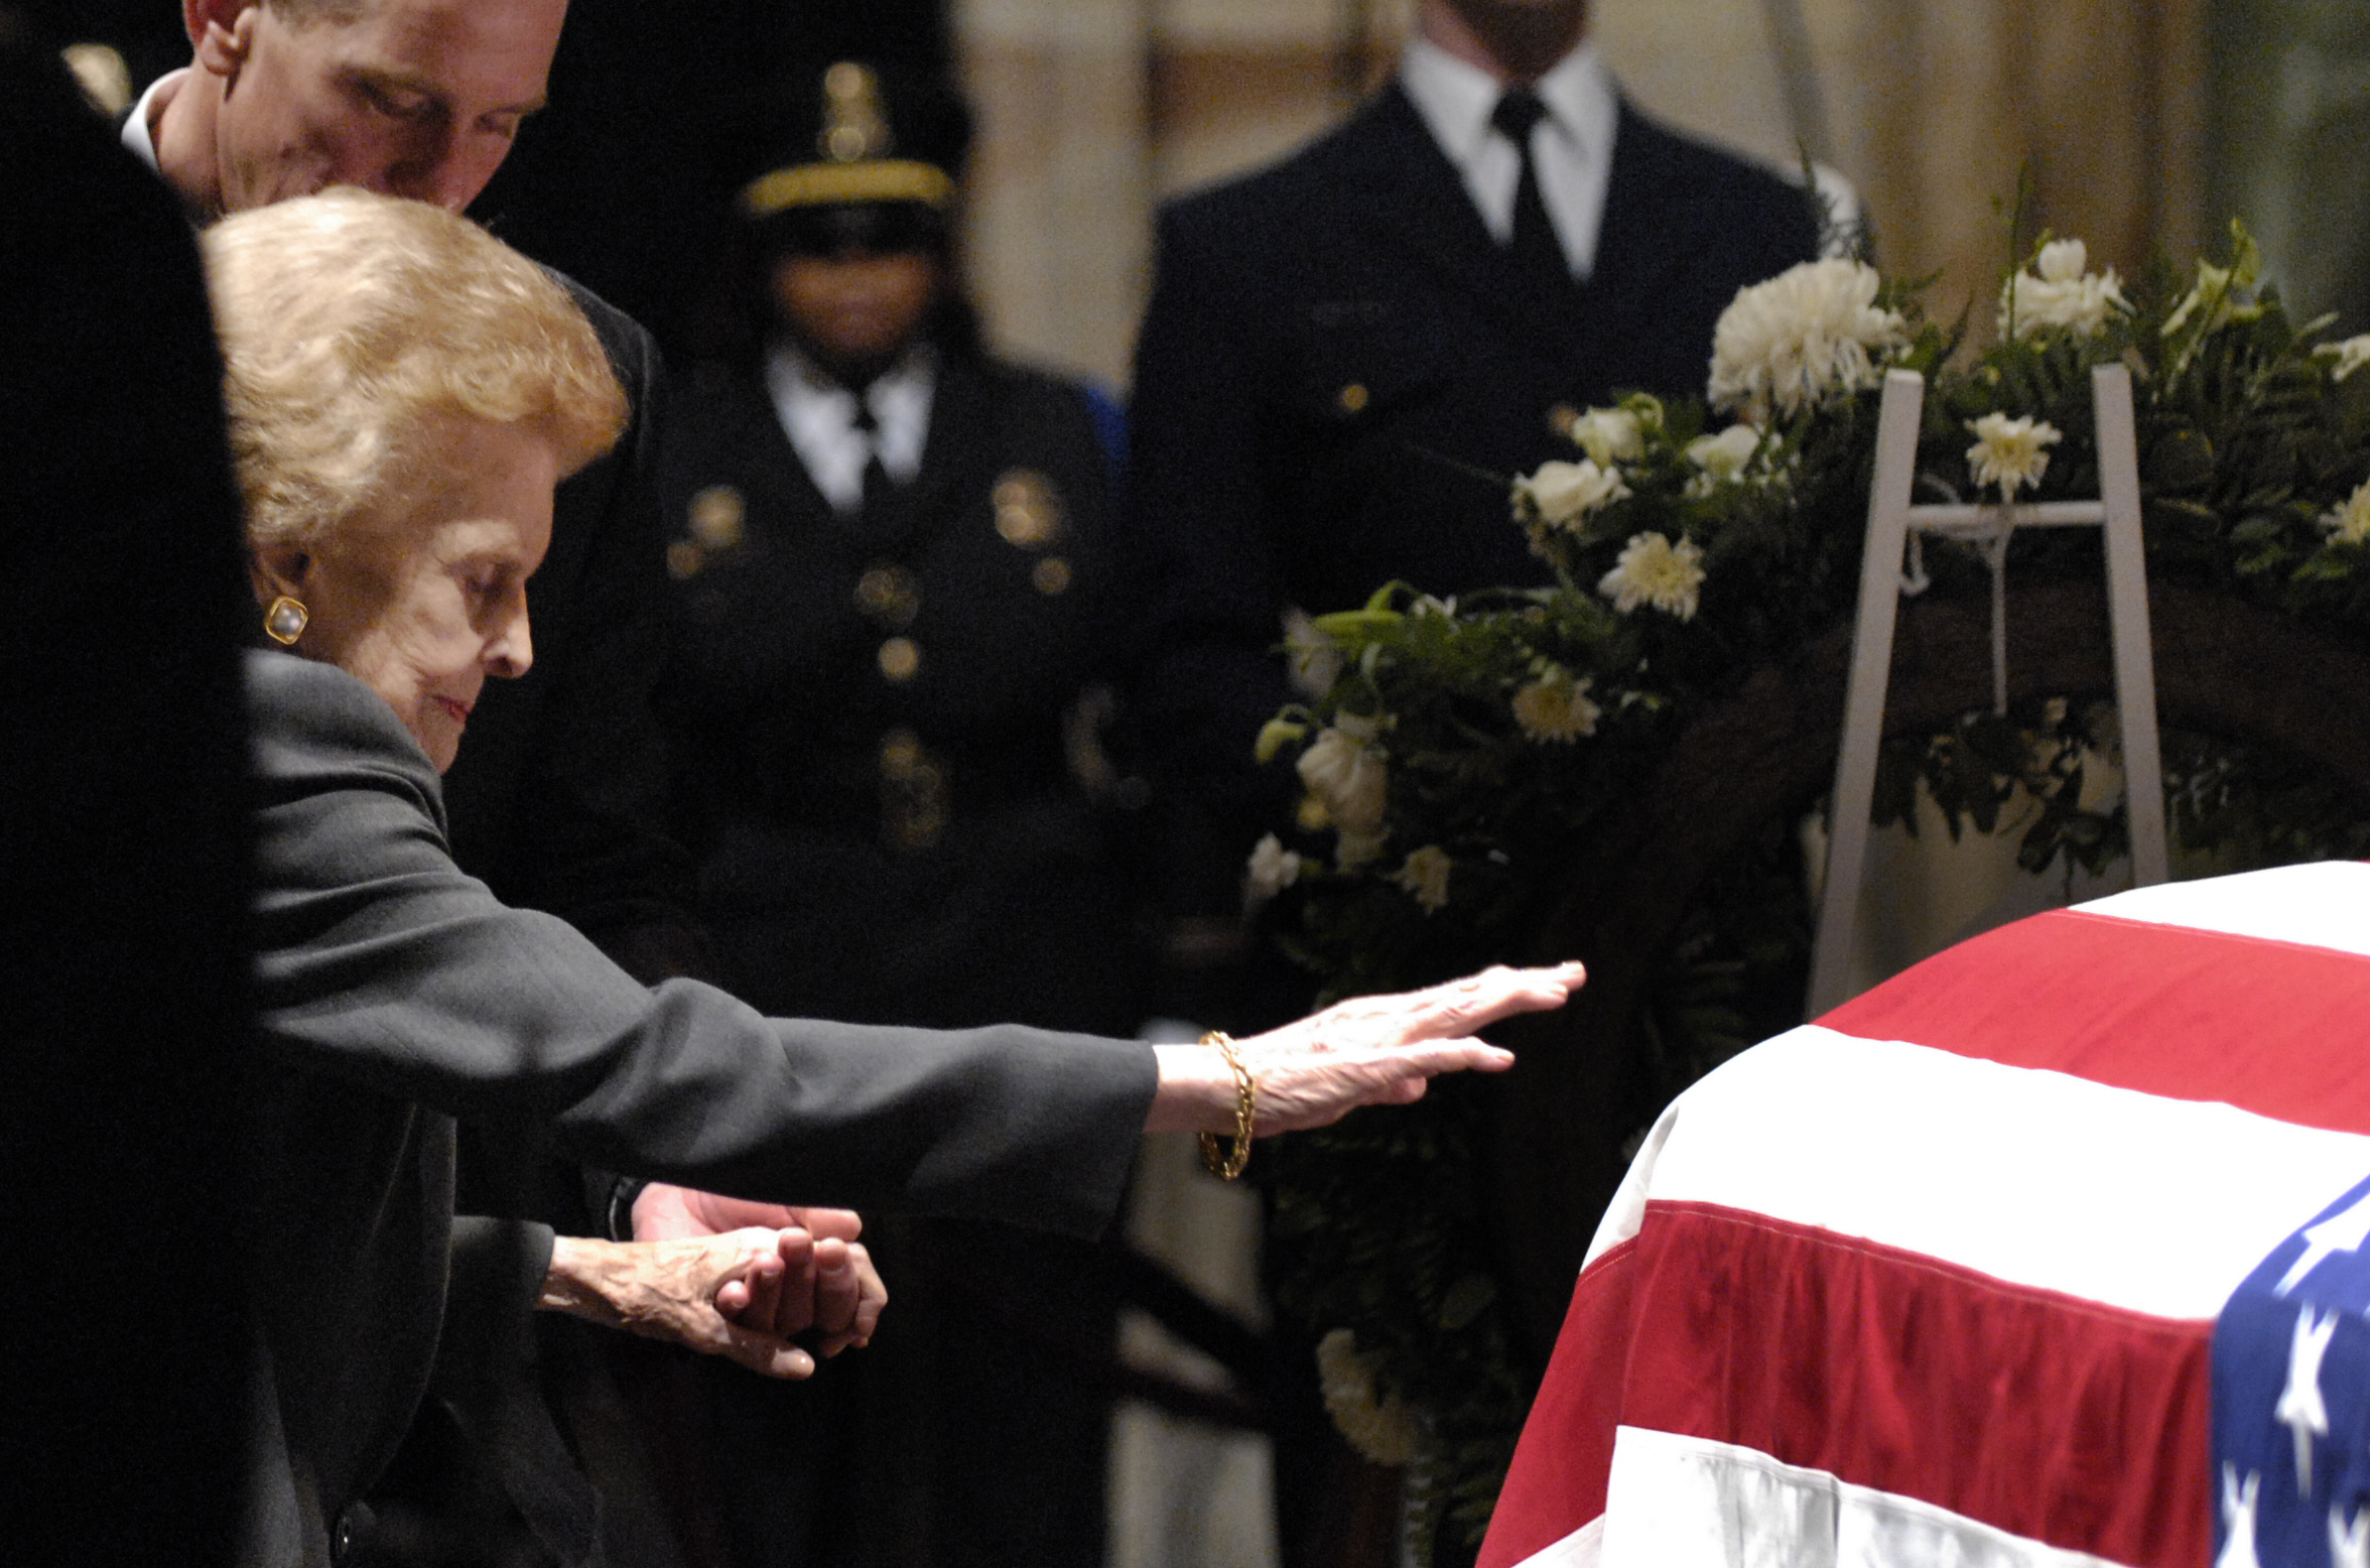 gerald ford funeral - photo #22